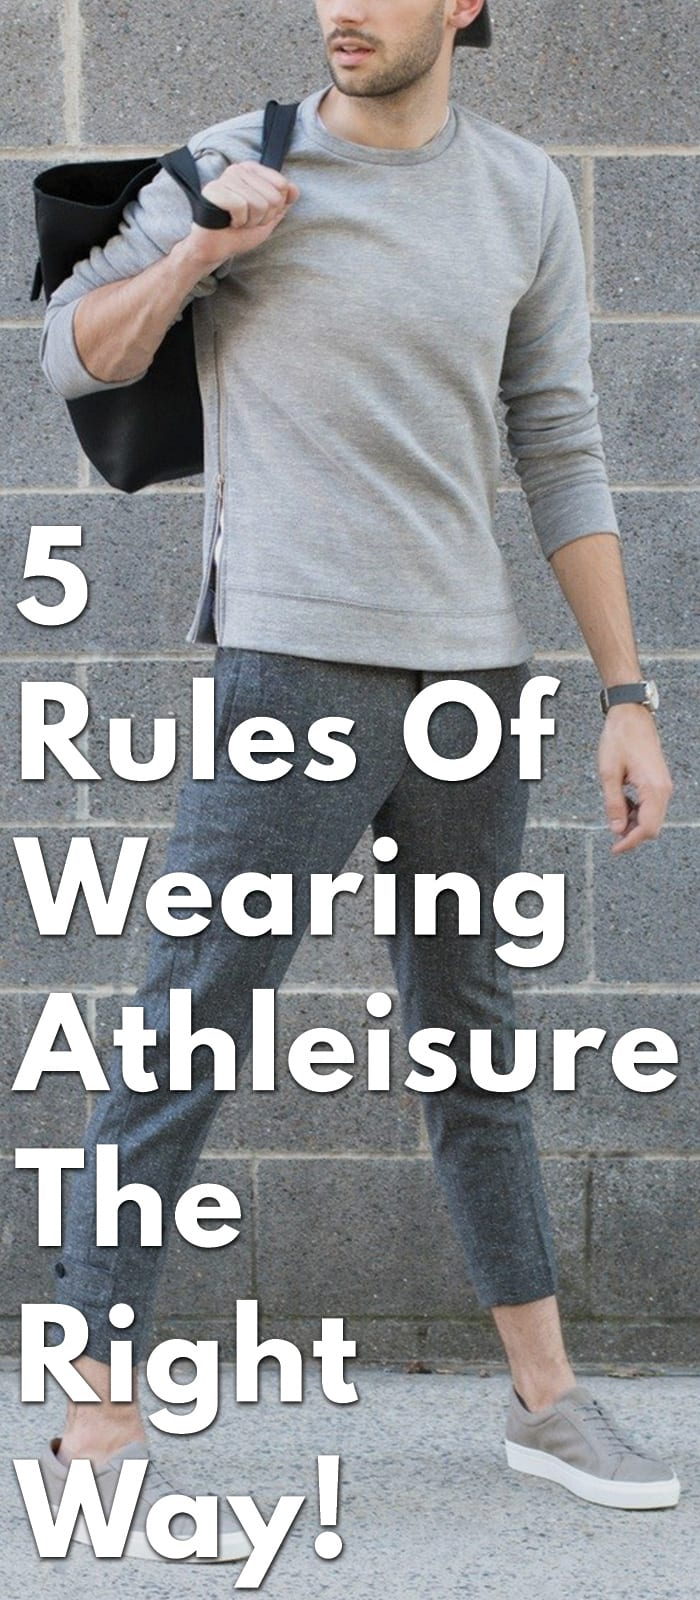 5-Rules-Of-Wearing-Athleisure-The-Right-Way!